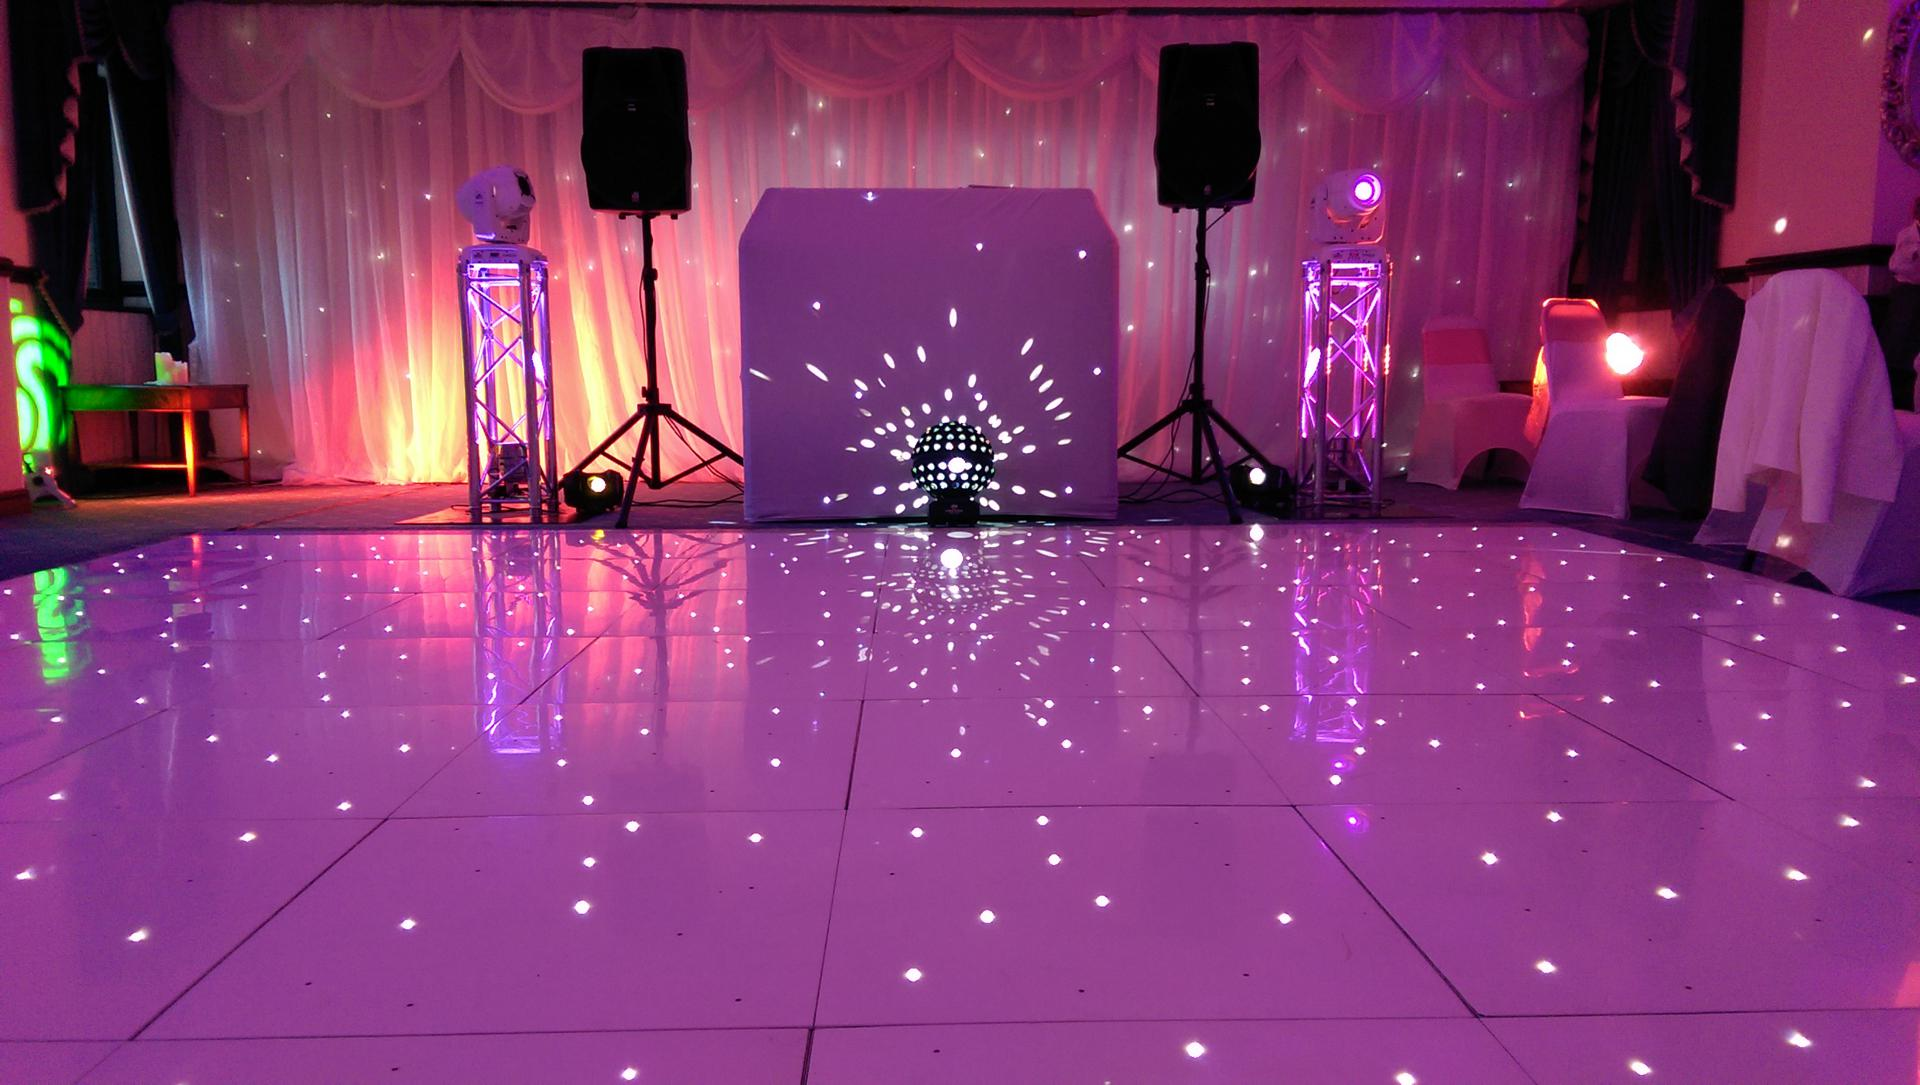 Obsession_entertainment_wedding_photography_wedding_dj_wedding_disco_drapes_lighting_equipment_higher_childrens_party-0070